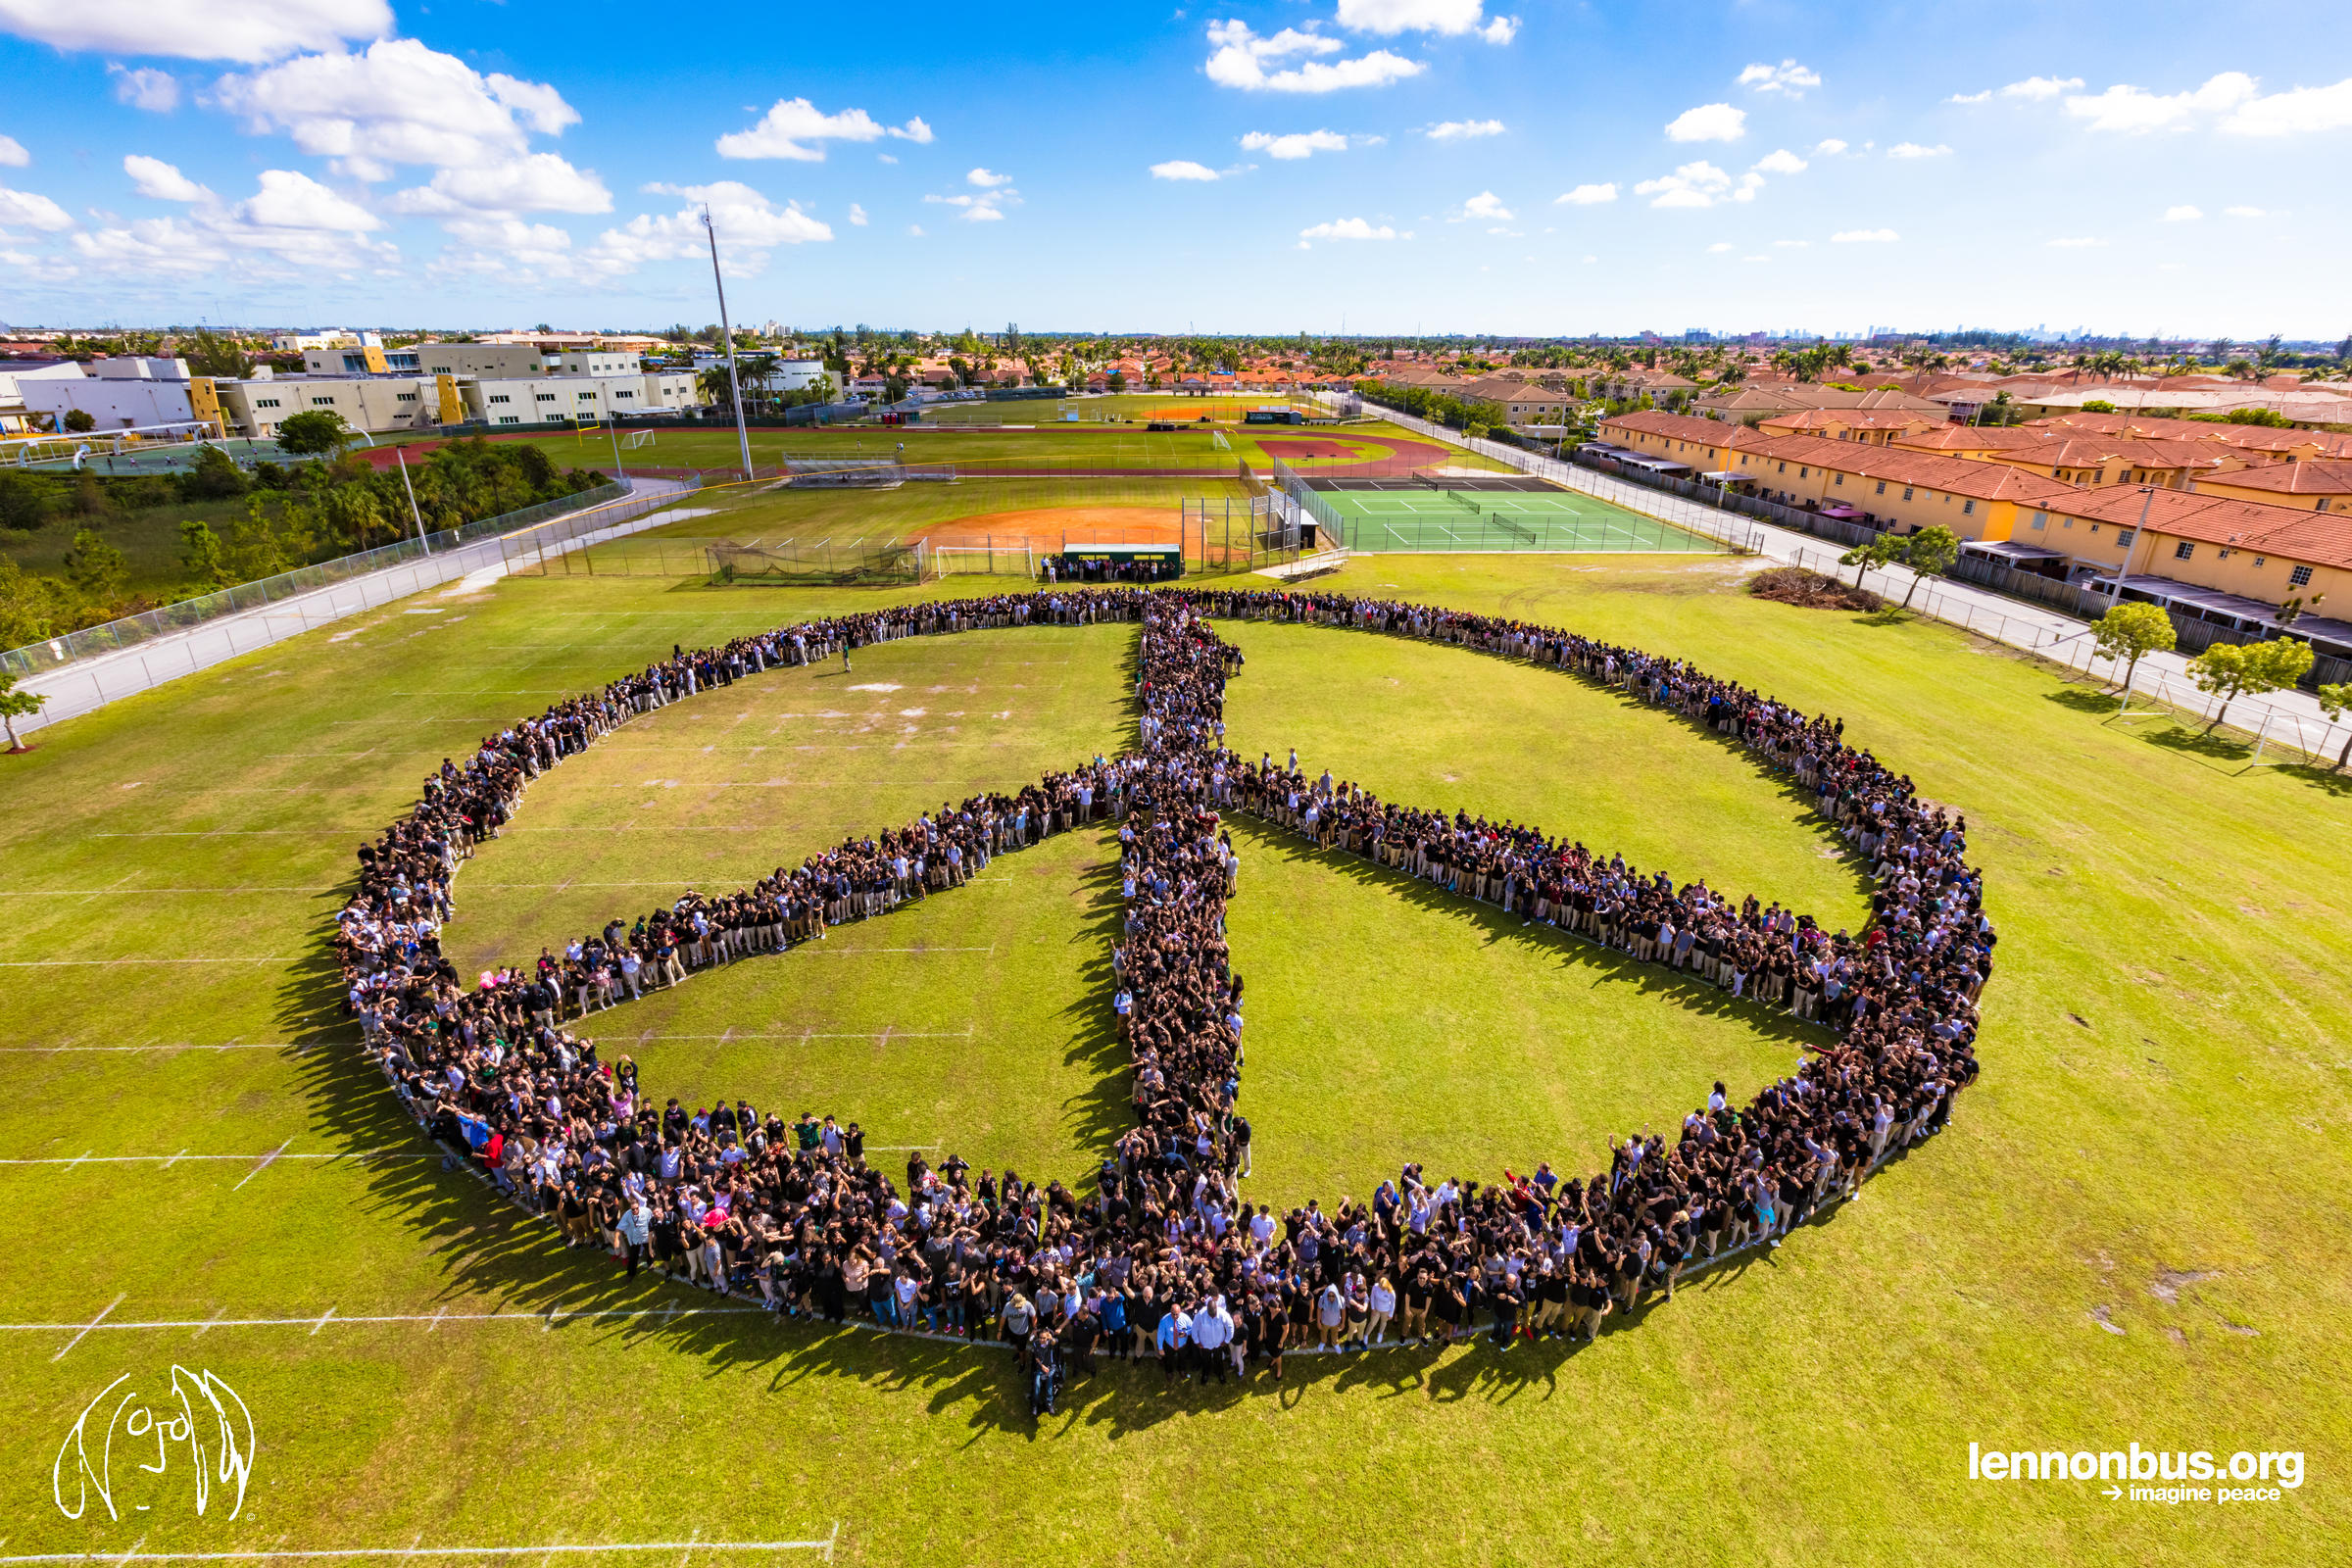 Three Thousand Hialeah Gardens High School Students And Staff Gather In The Shape Of A Peace Sign Provided John Lennon